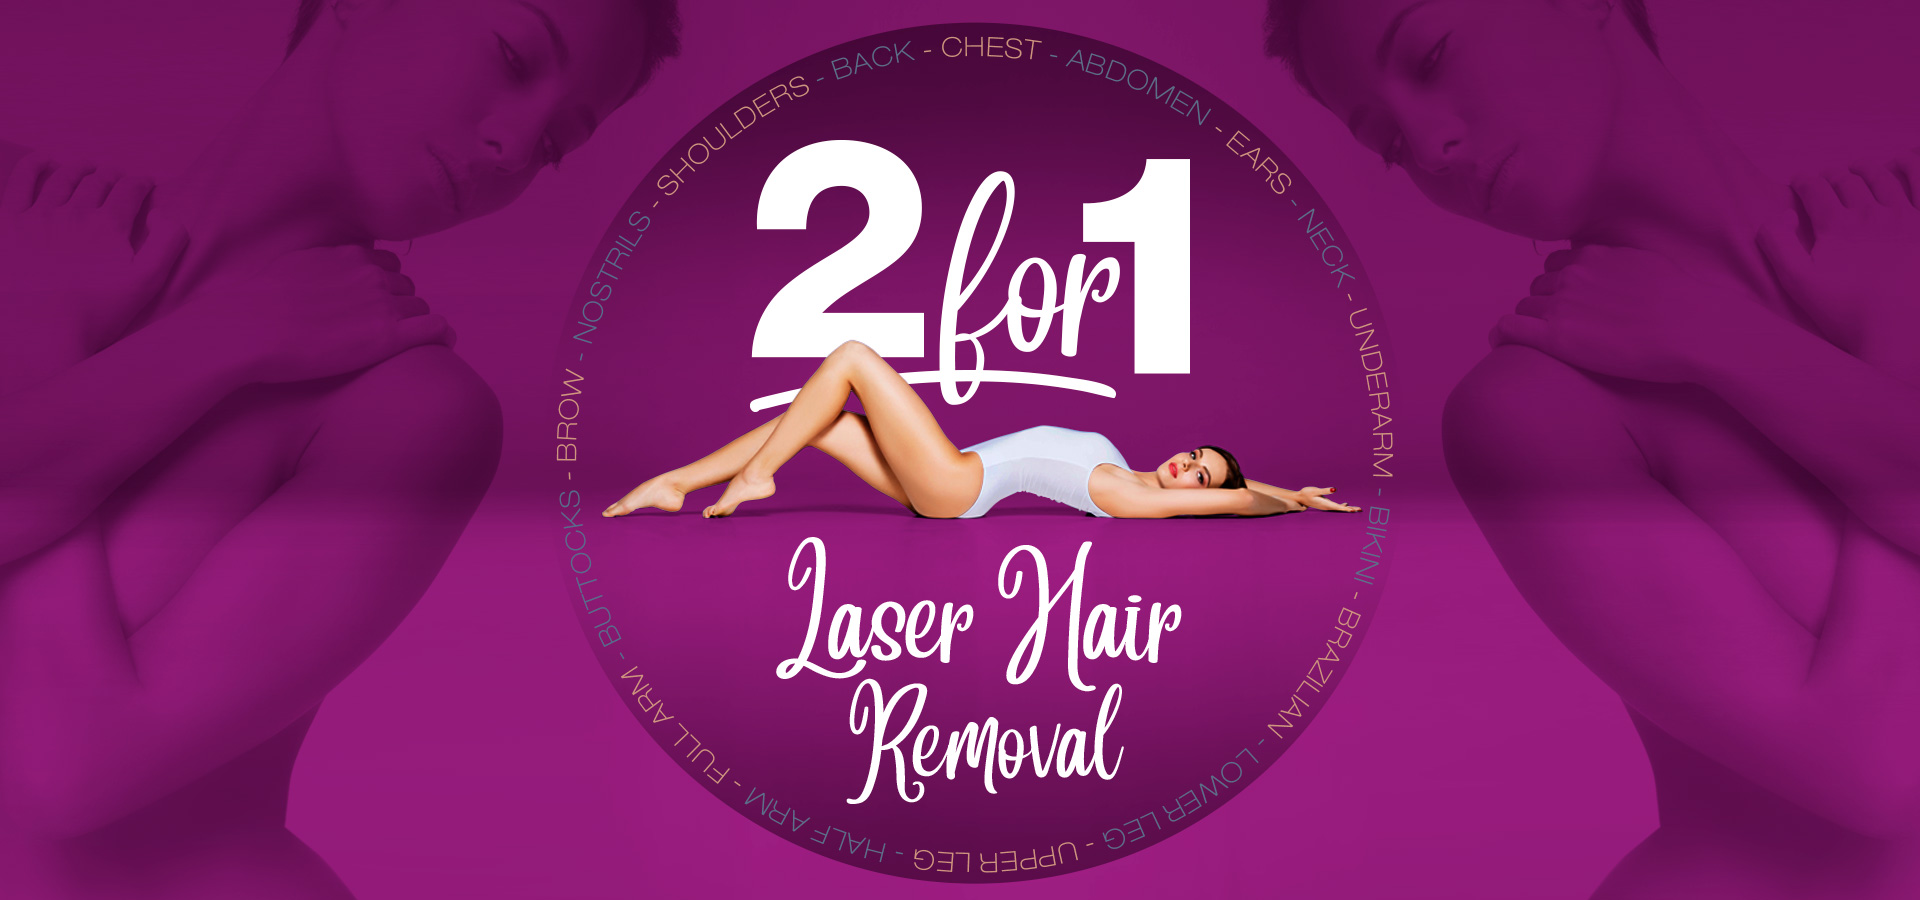 Laser leg hair removal discount deal